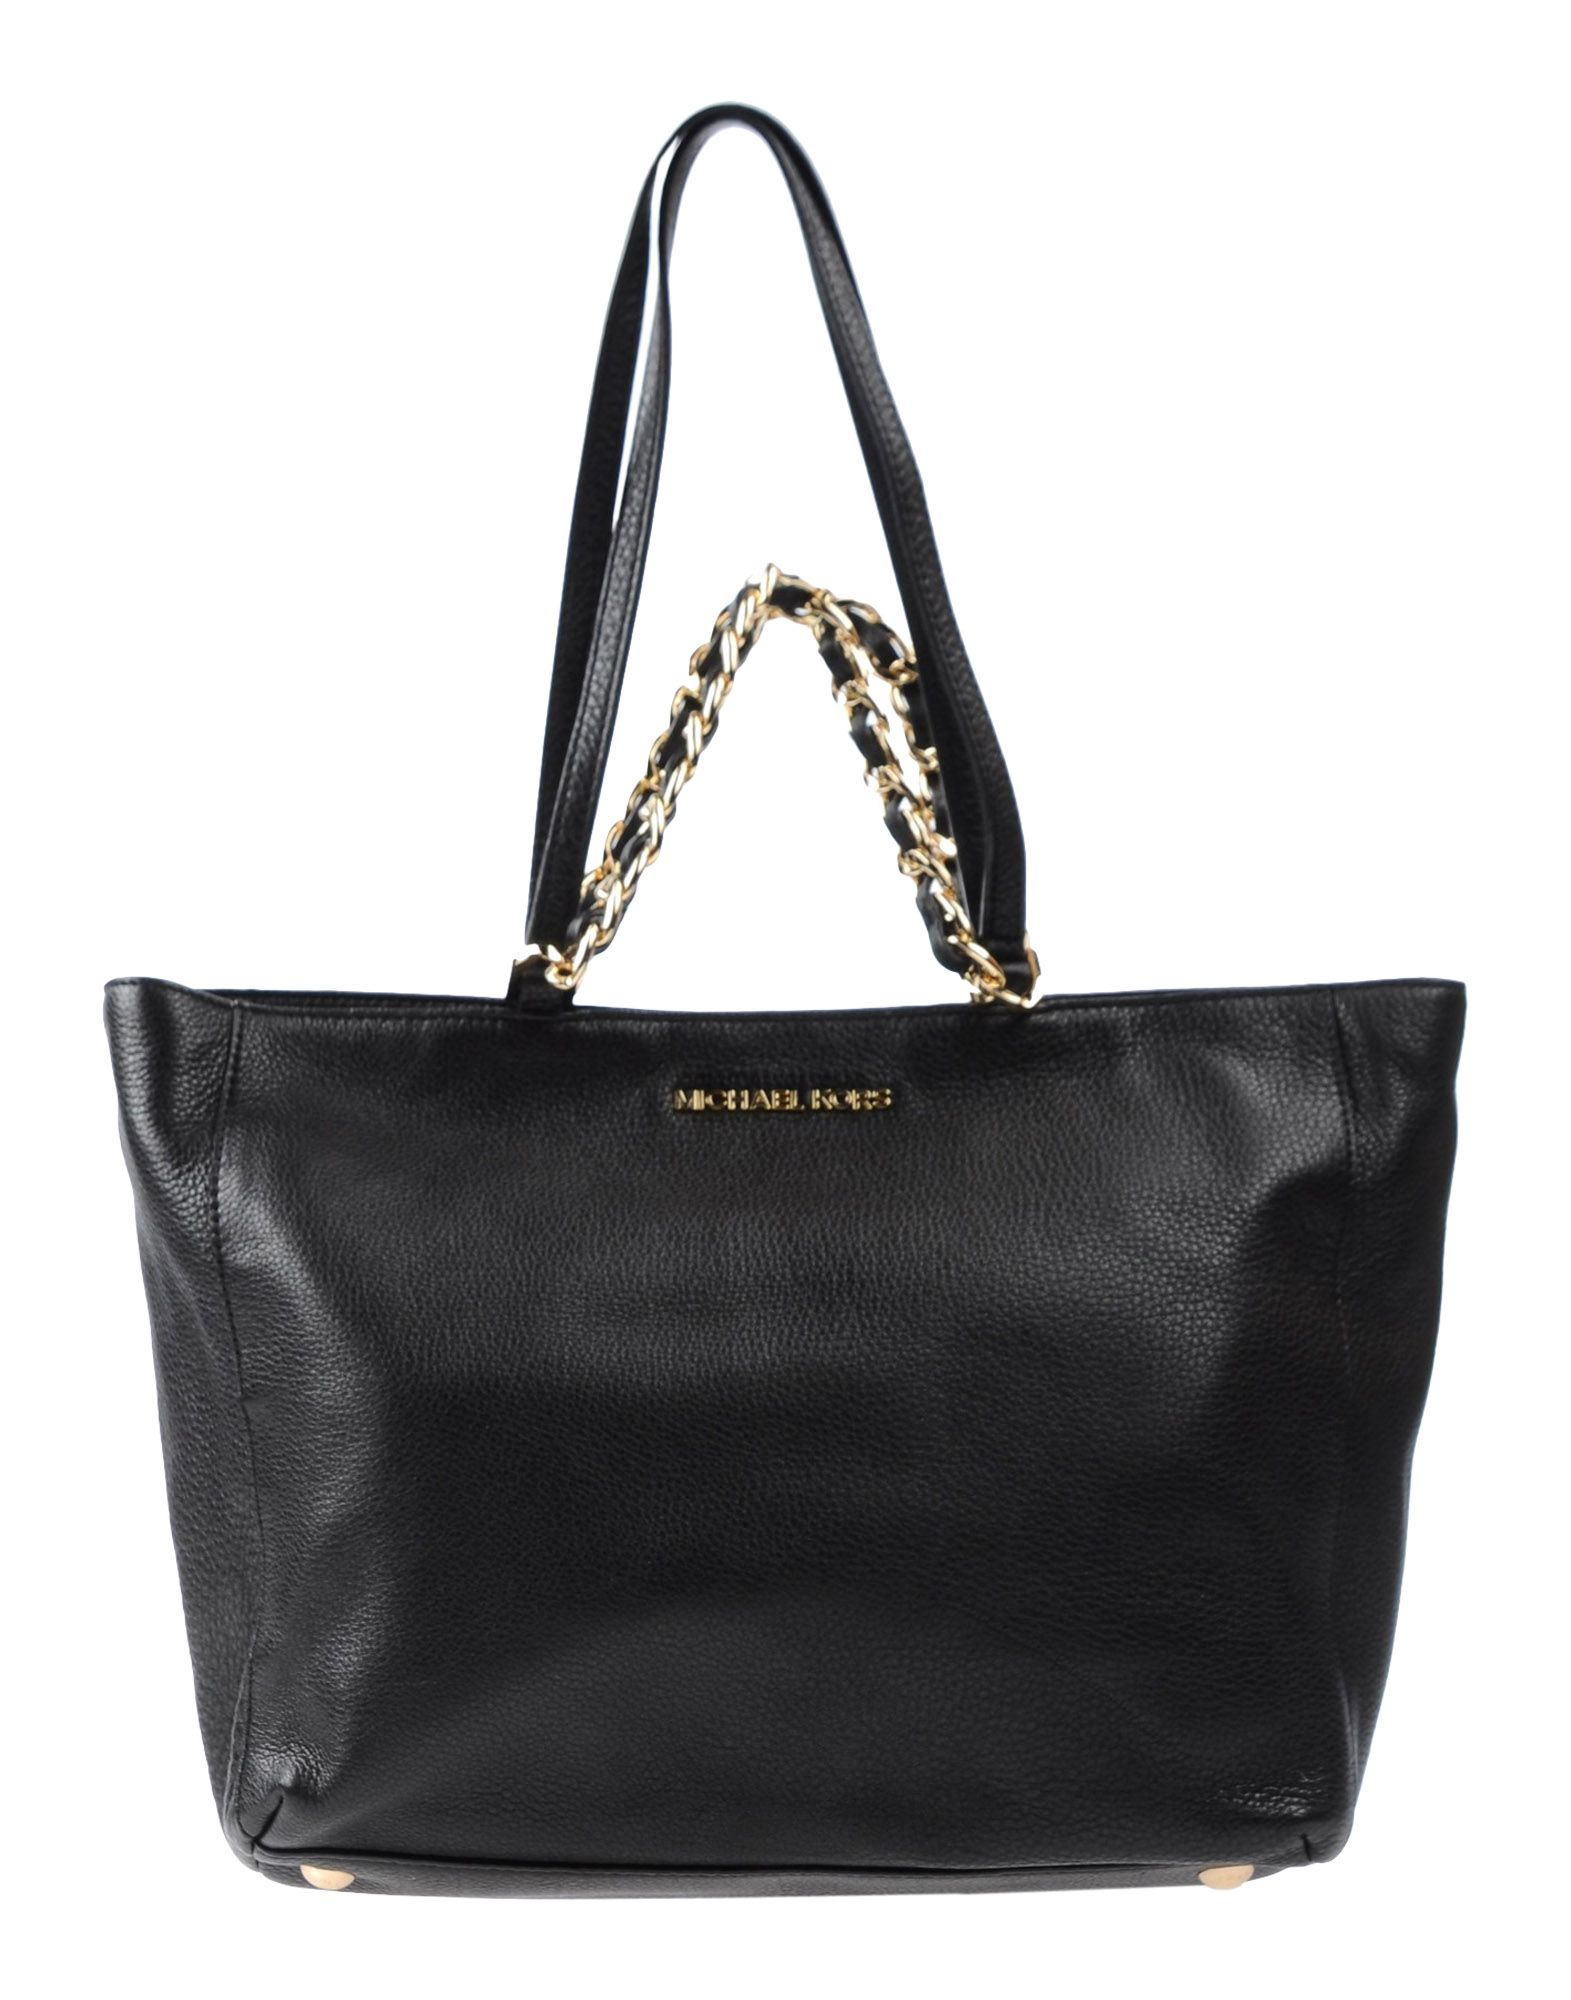 Michael michael kors Handbag in Black